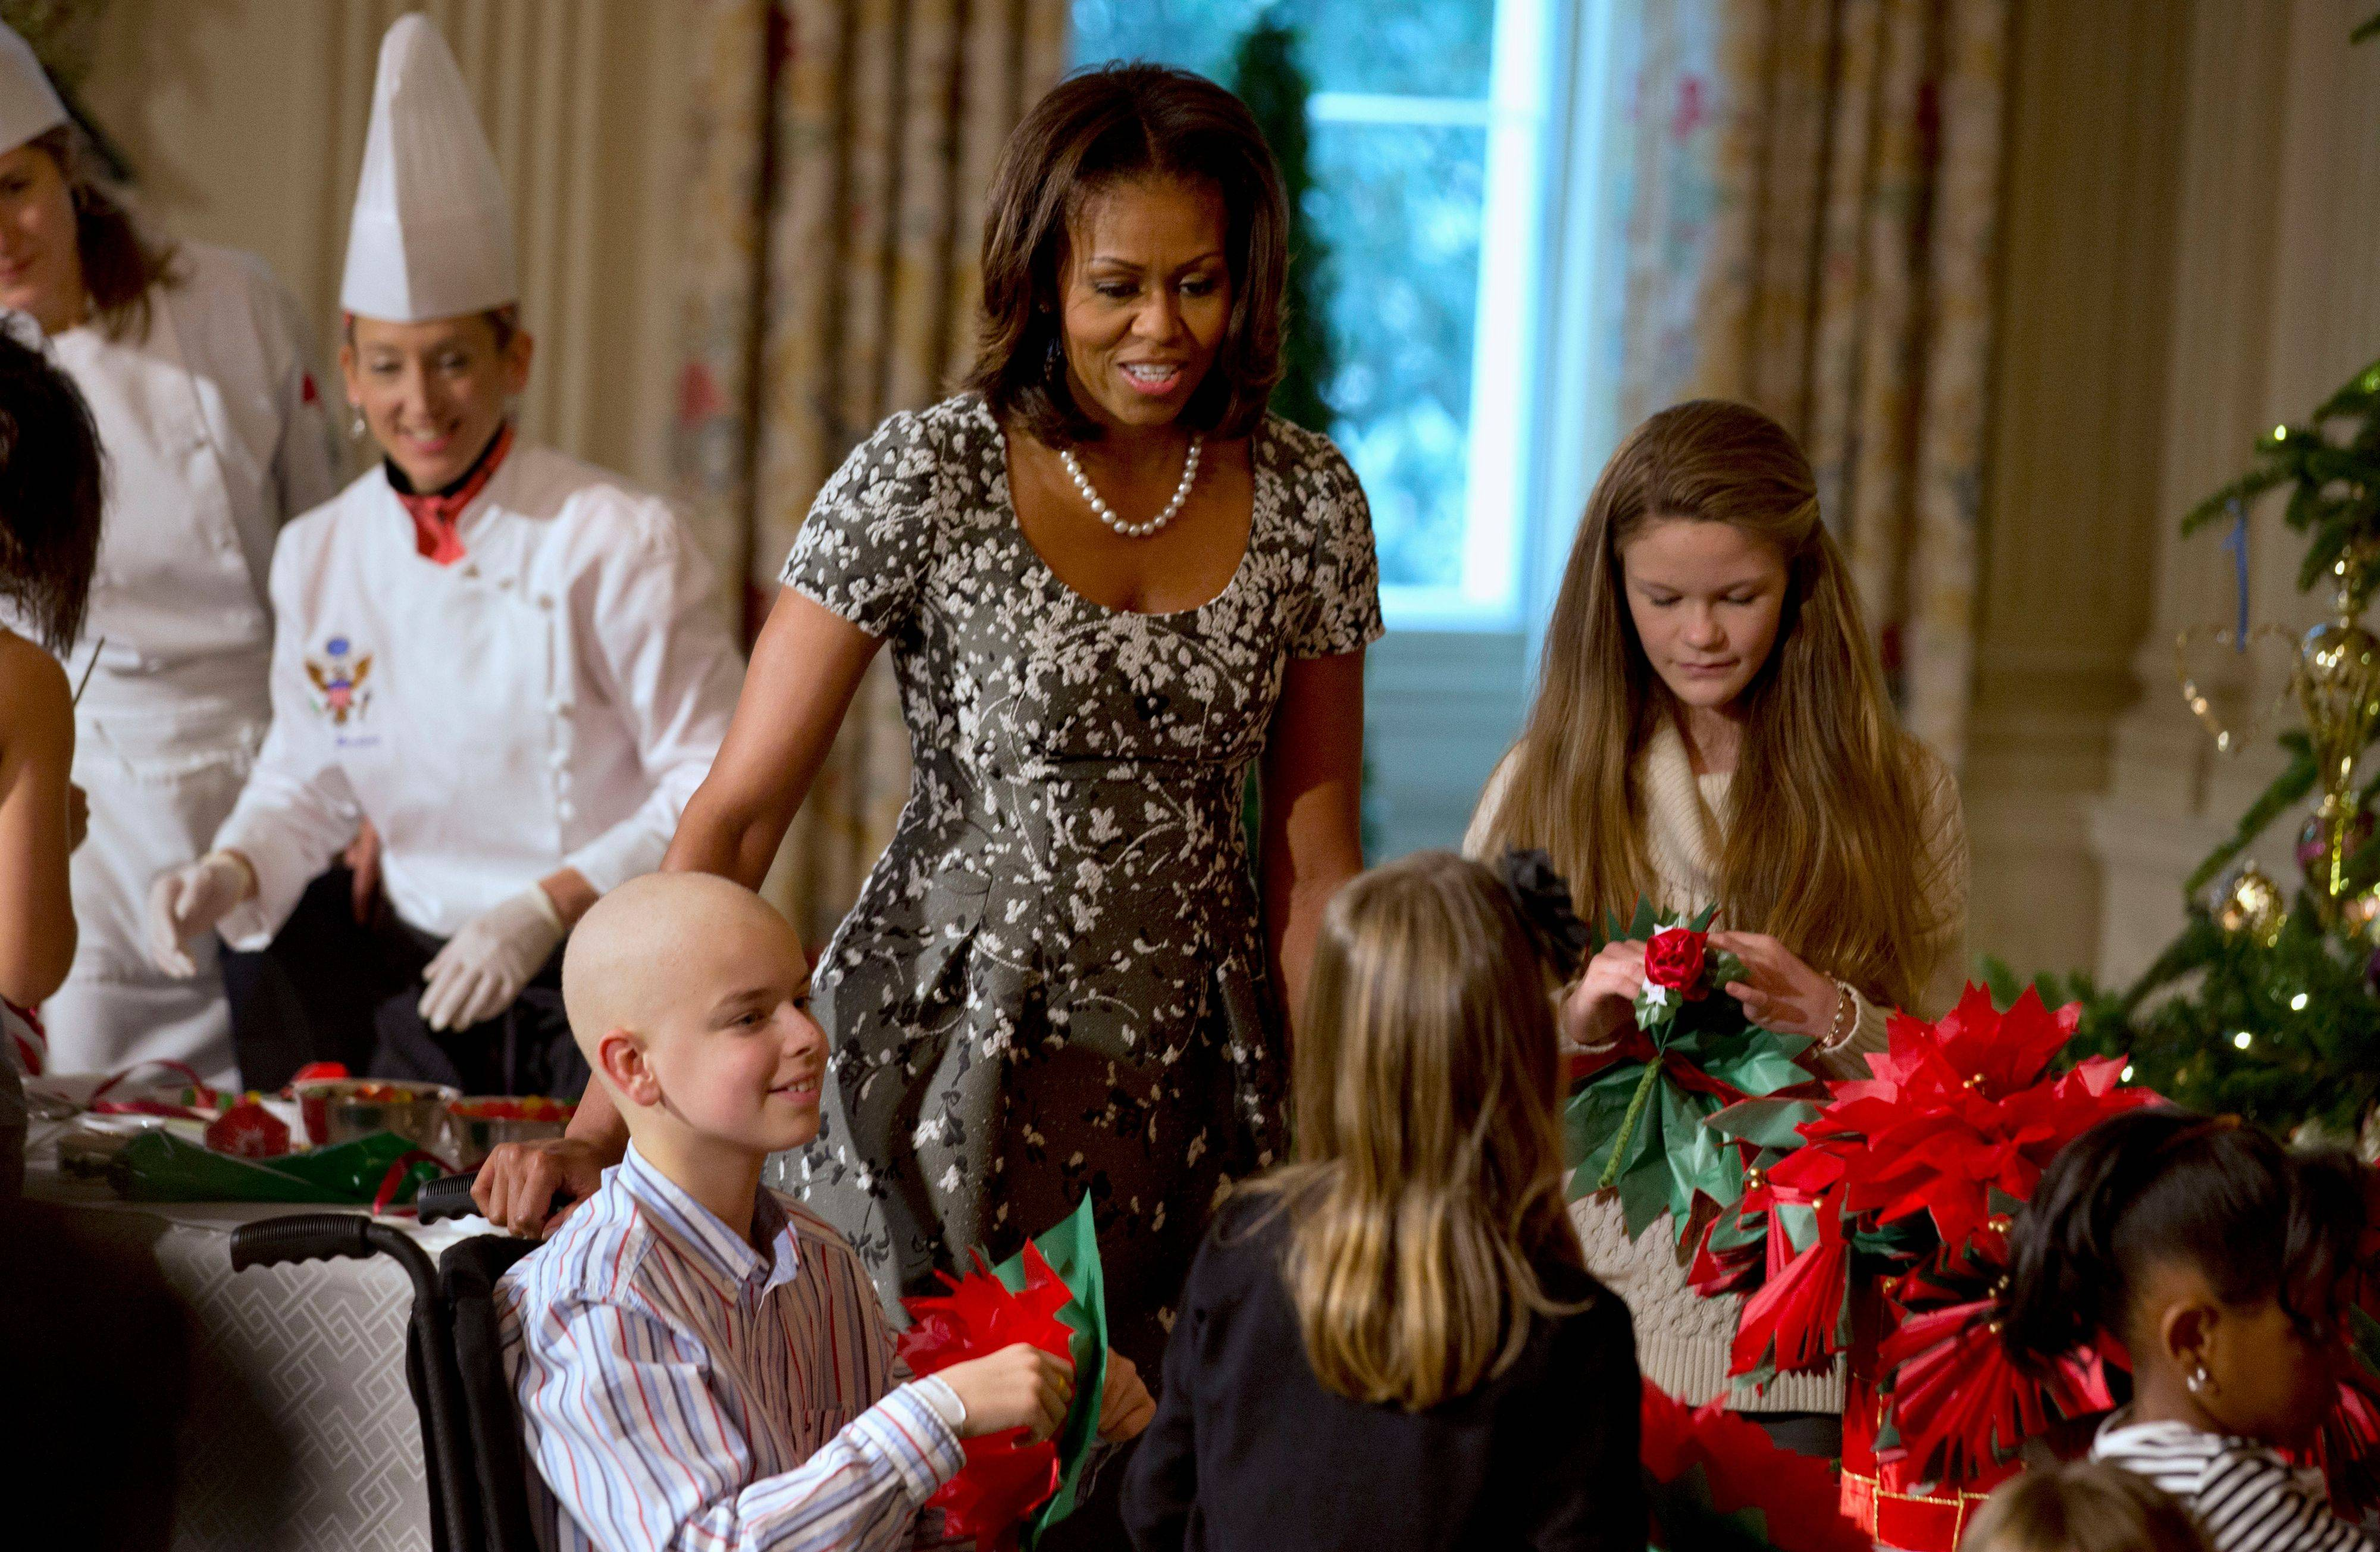 First lady Michelle Obama greets children during a holiday celebration showing the holiday decorations at the White House on Wednesday.$PHOTOCREDIT_ON$ASSOCIATED PRESS$PHOTOCREDIT_OFF$